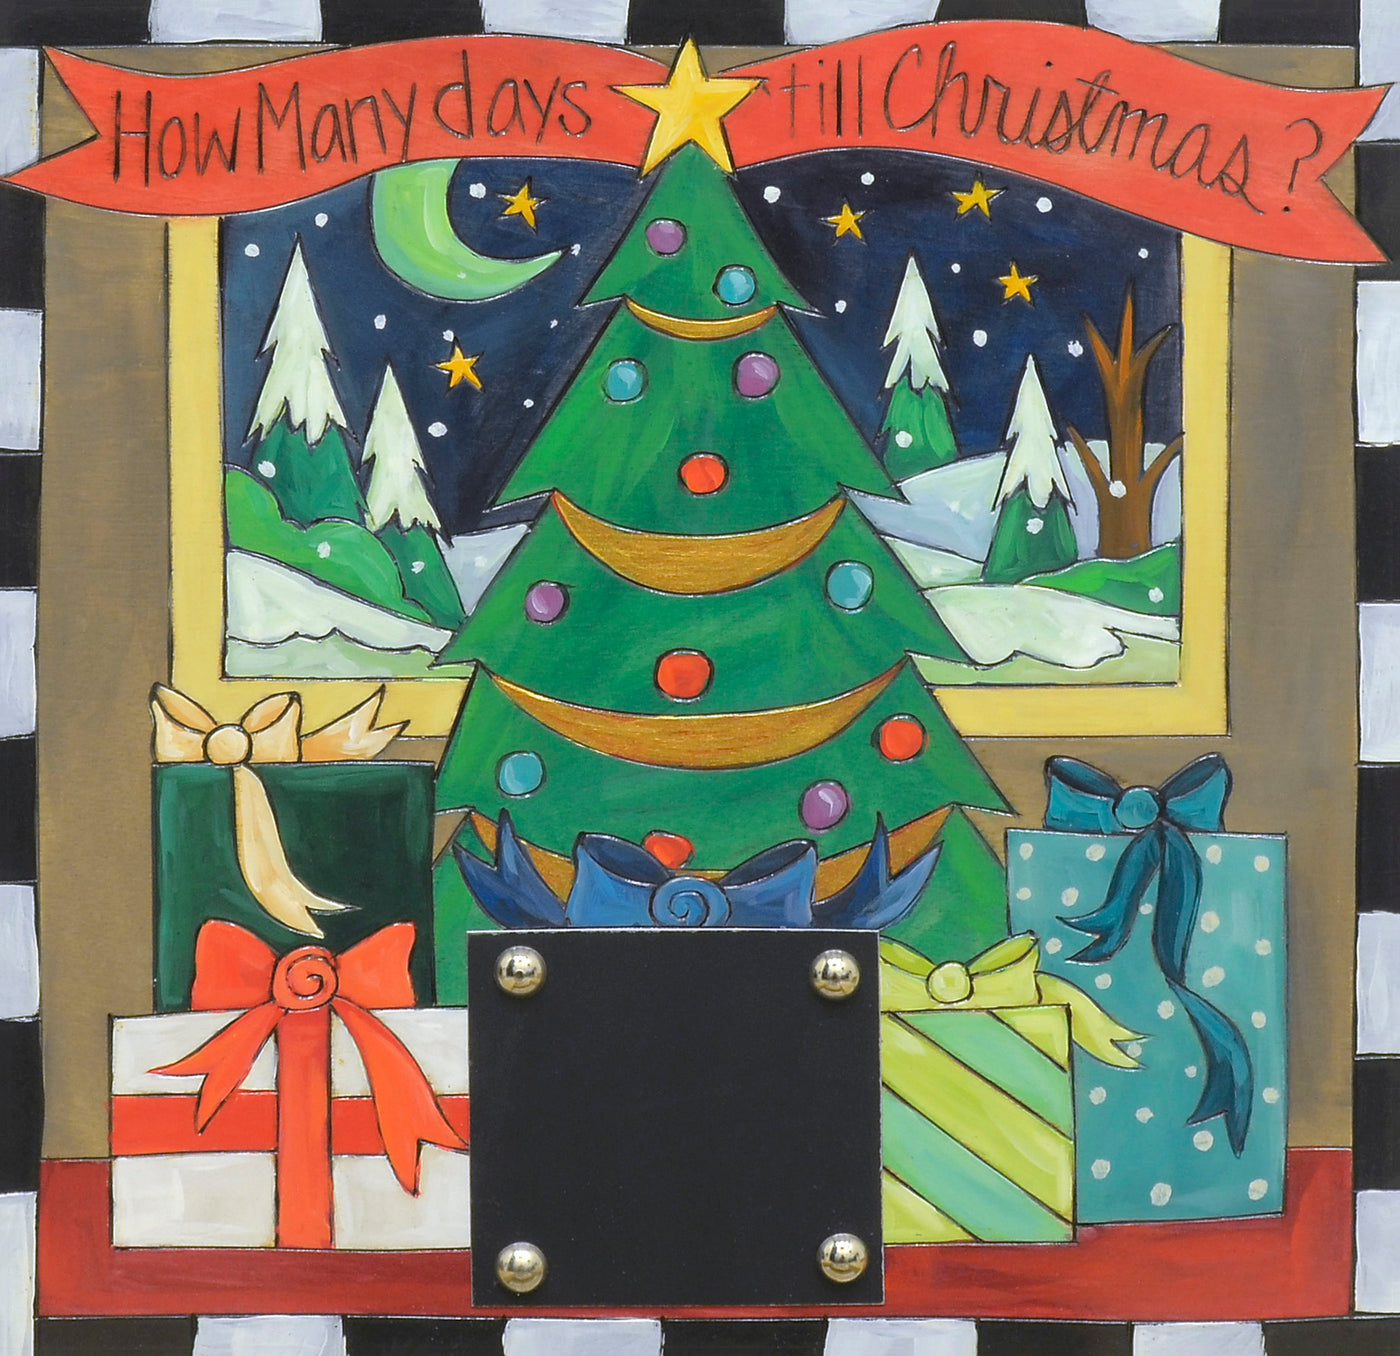 How Many Days Till Christmas.Christmas Countdown Plaque